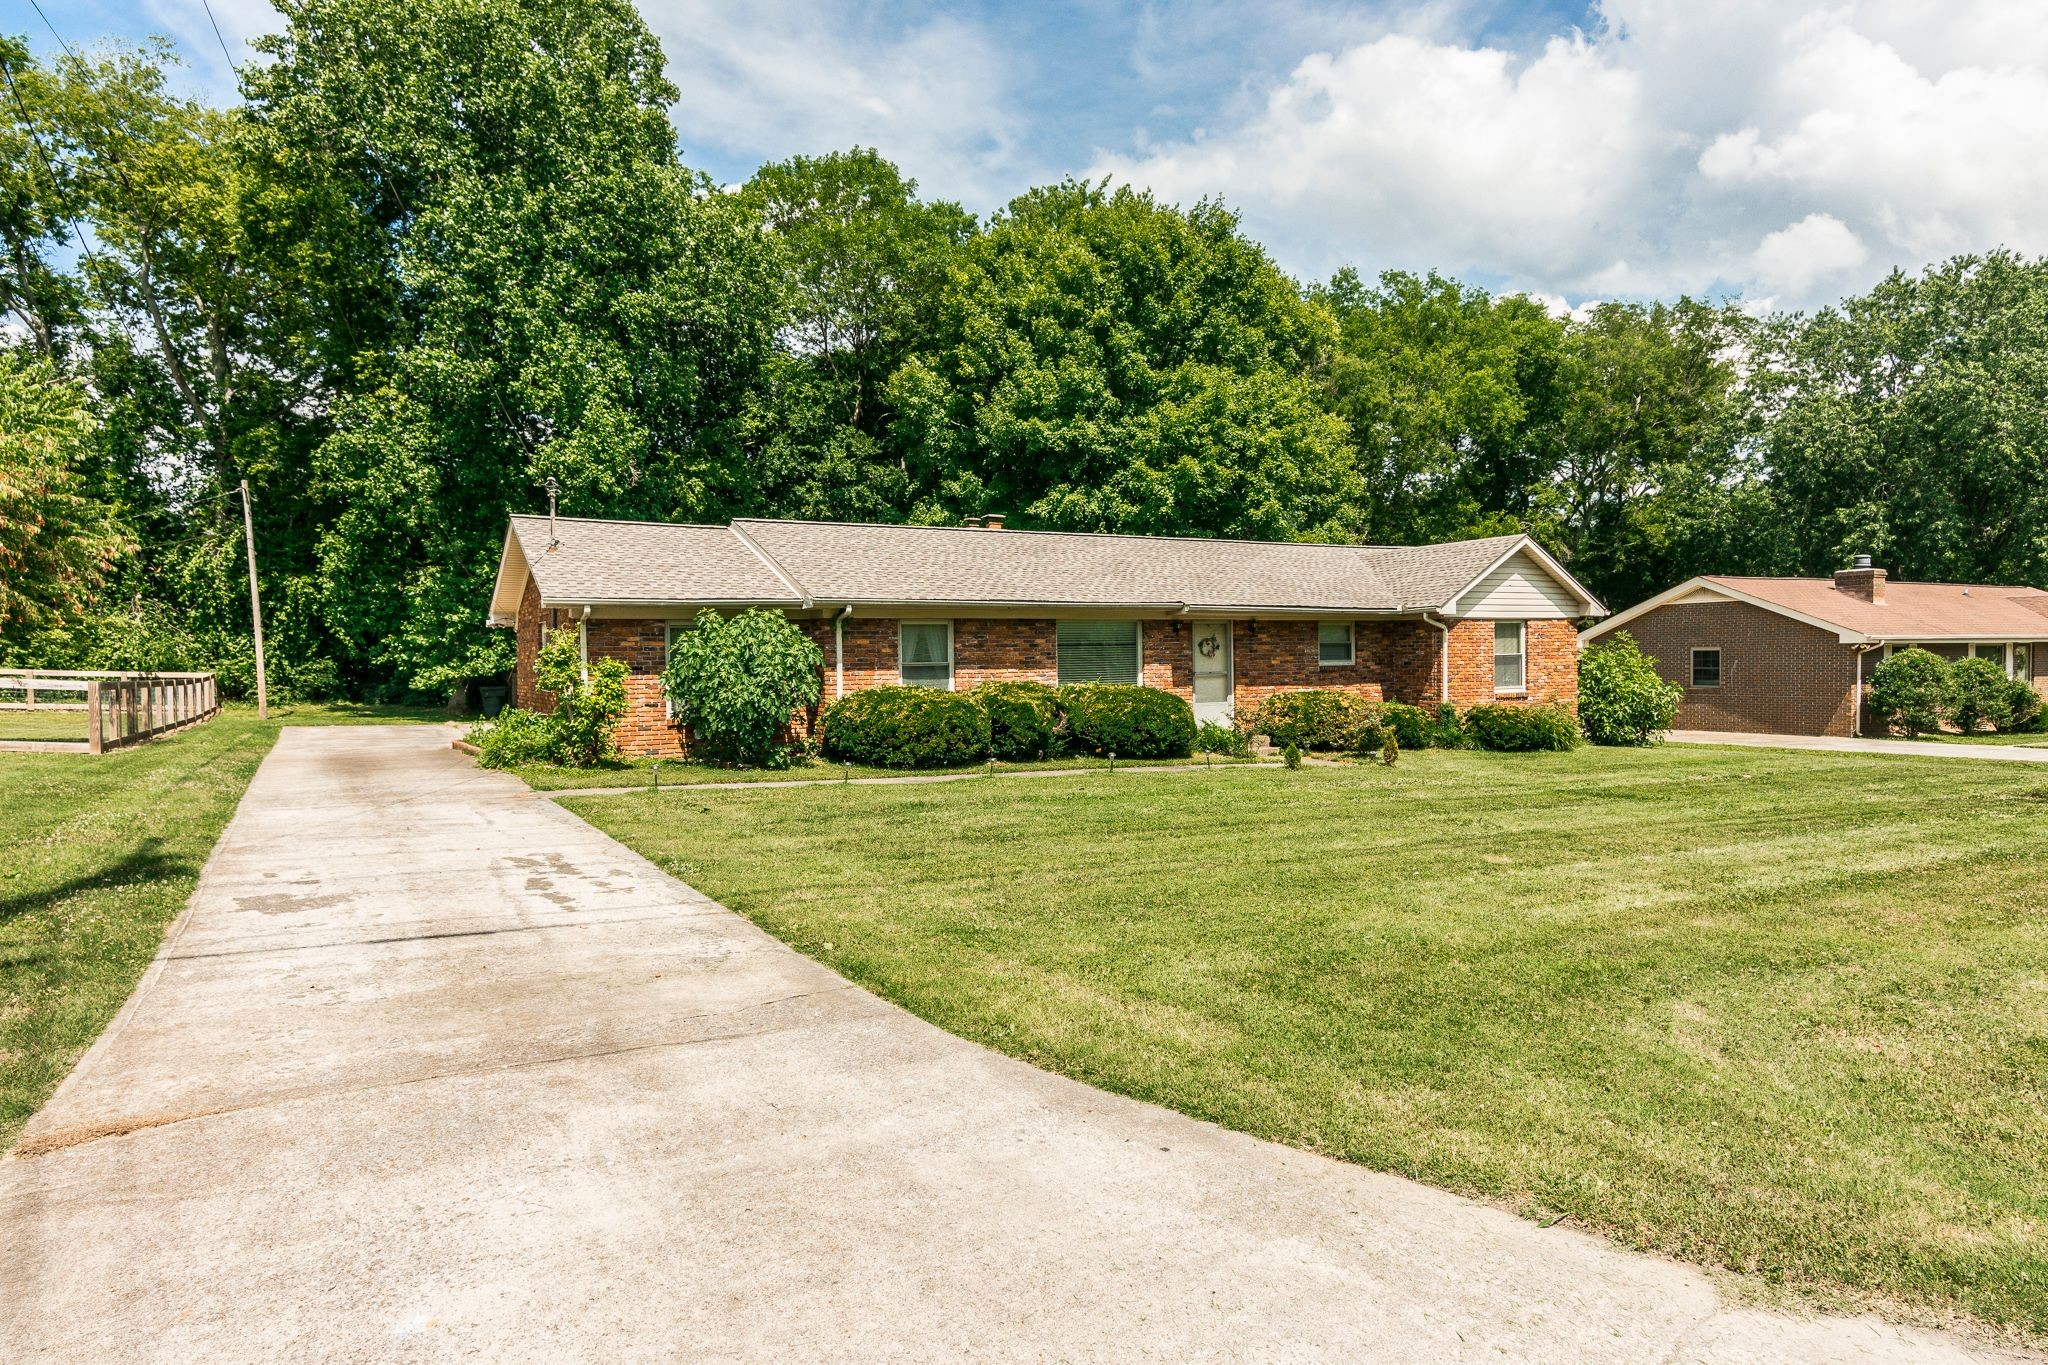 815 Belvedere Dr Property Photo 1